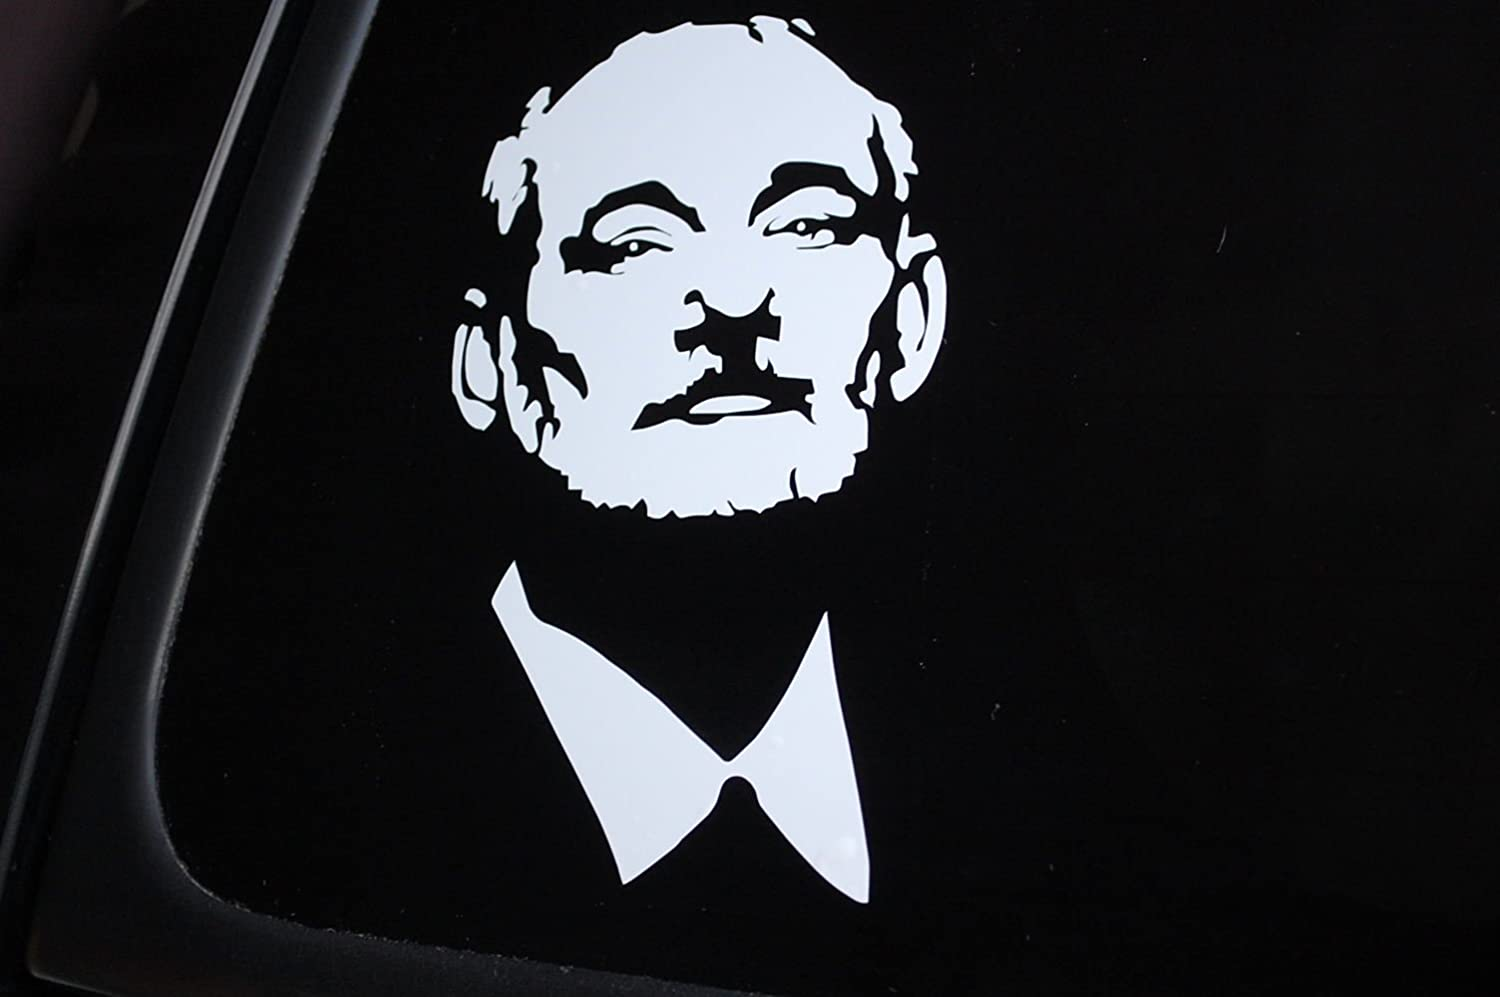 Taken by a bearded man car window vinyl decal 5 by 5 made from 6 year